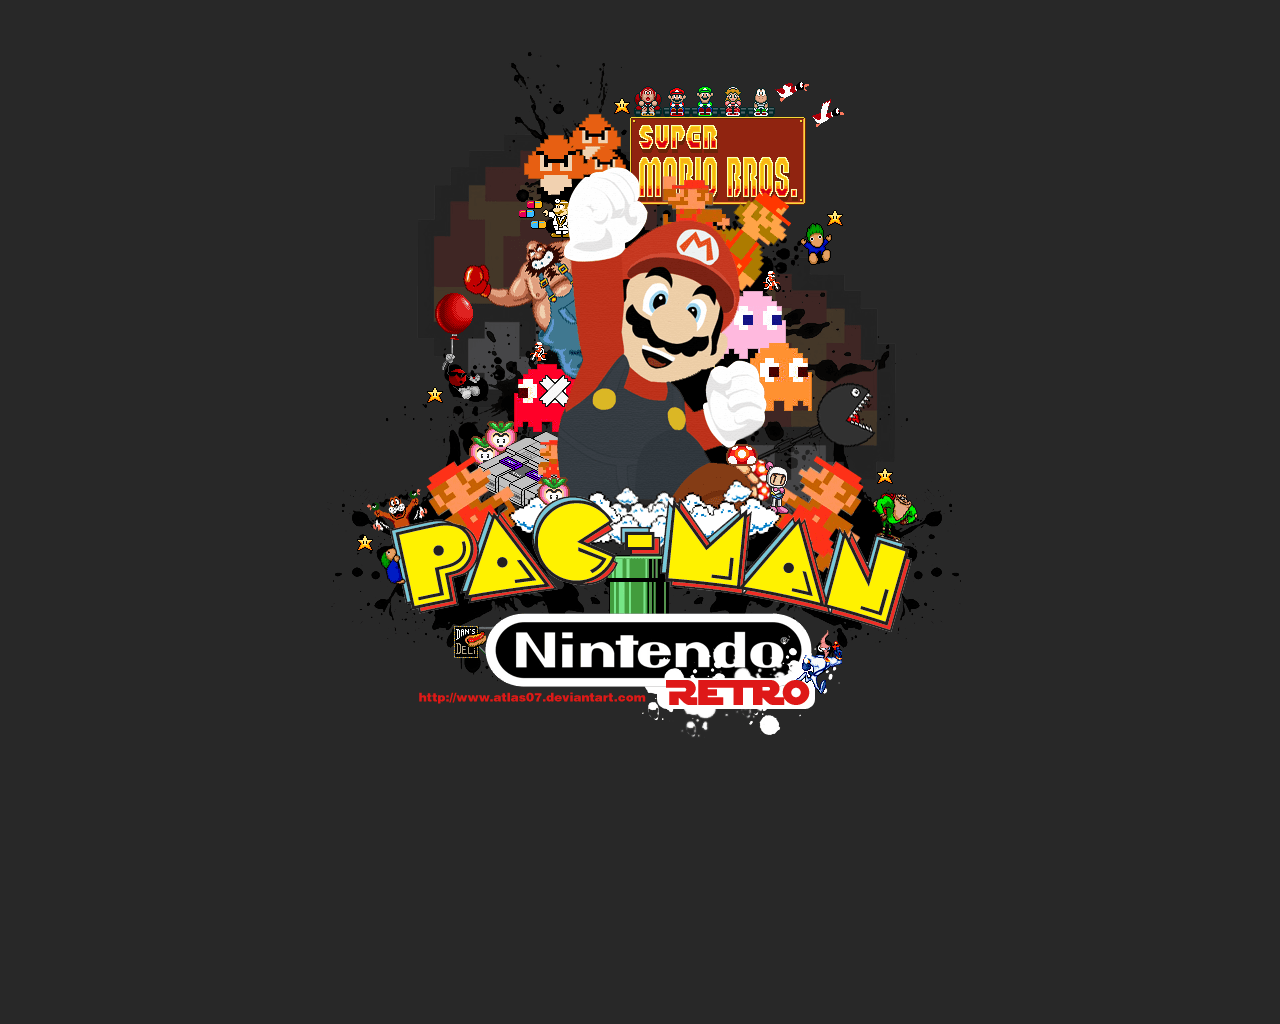 Retro Game Wallpapers   Top Retro Game Backgrounds 1280x1024